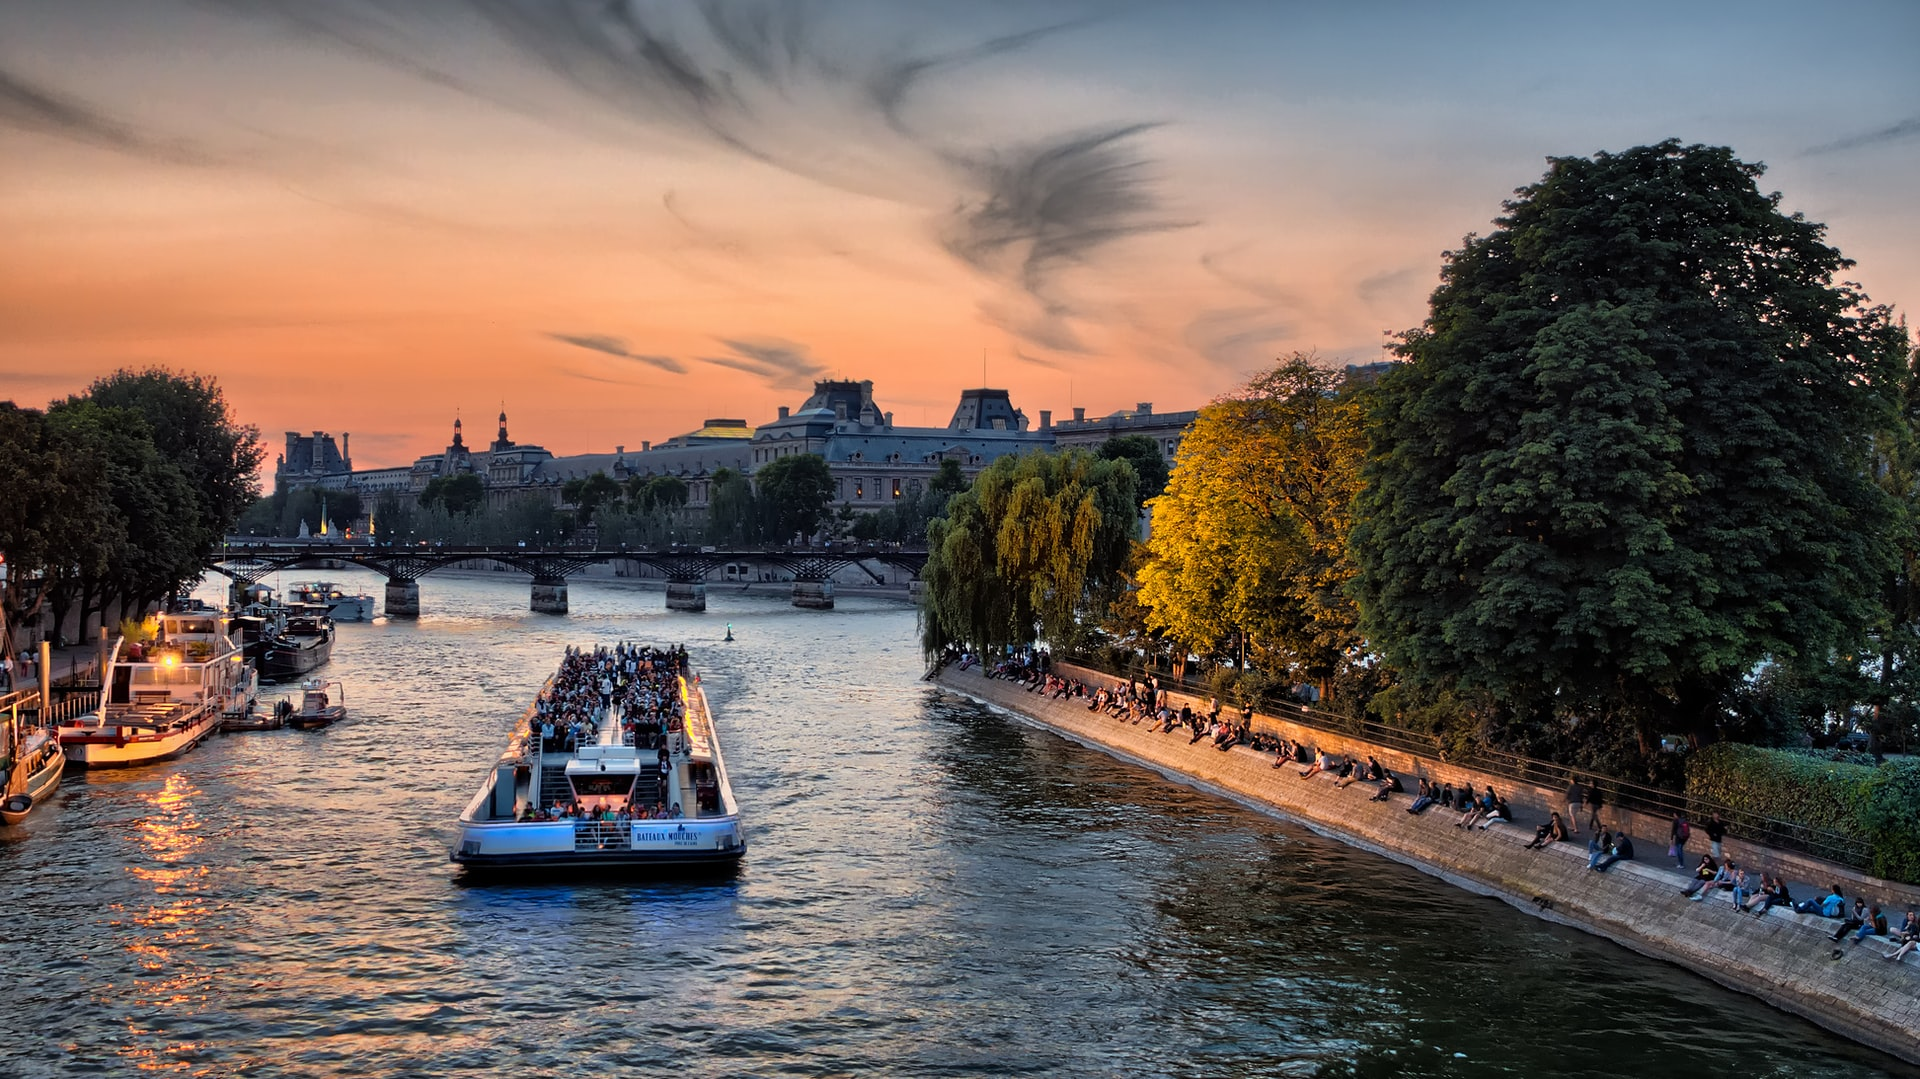 River cruise along the Seine in Paris at sunset